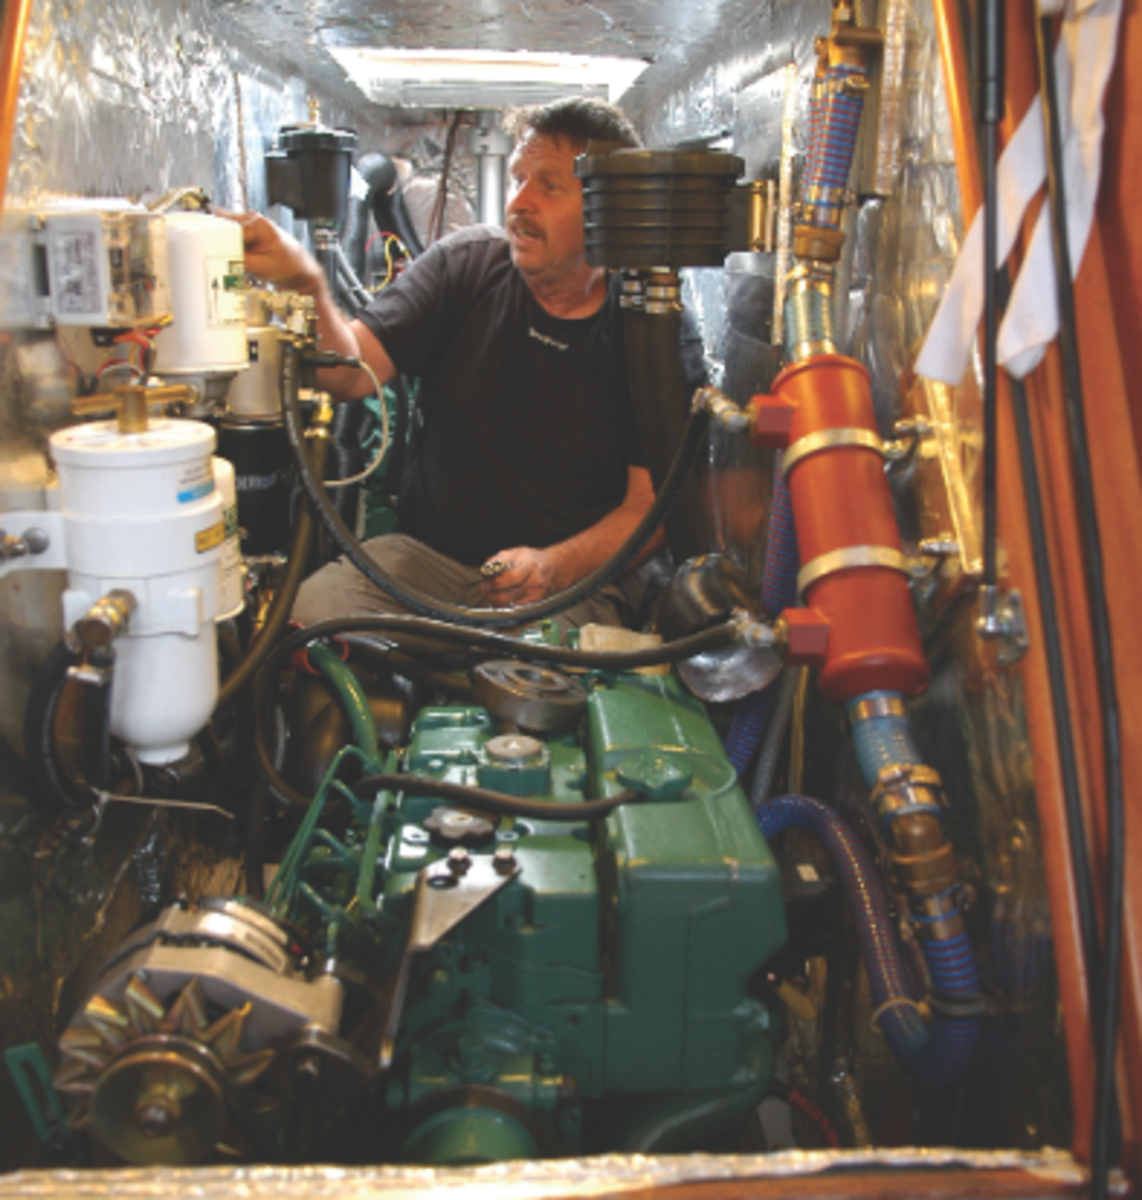 This is the conventional system used to collect baseline data to be compared to the hybrid data. Here we have the Volvo Penta D2-75 diesel being kitted out with sophisticated fuel and torque measurement equipment.